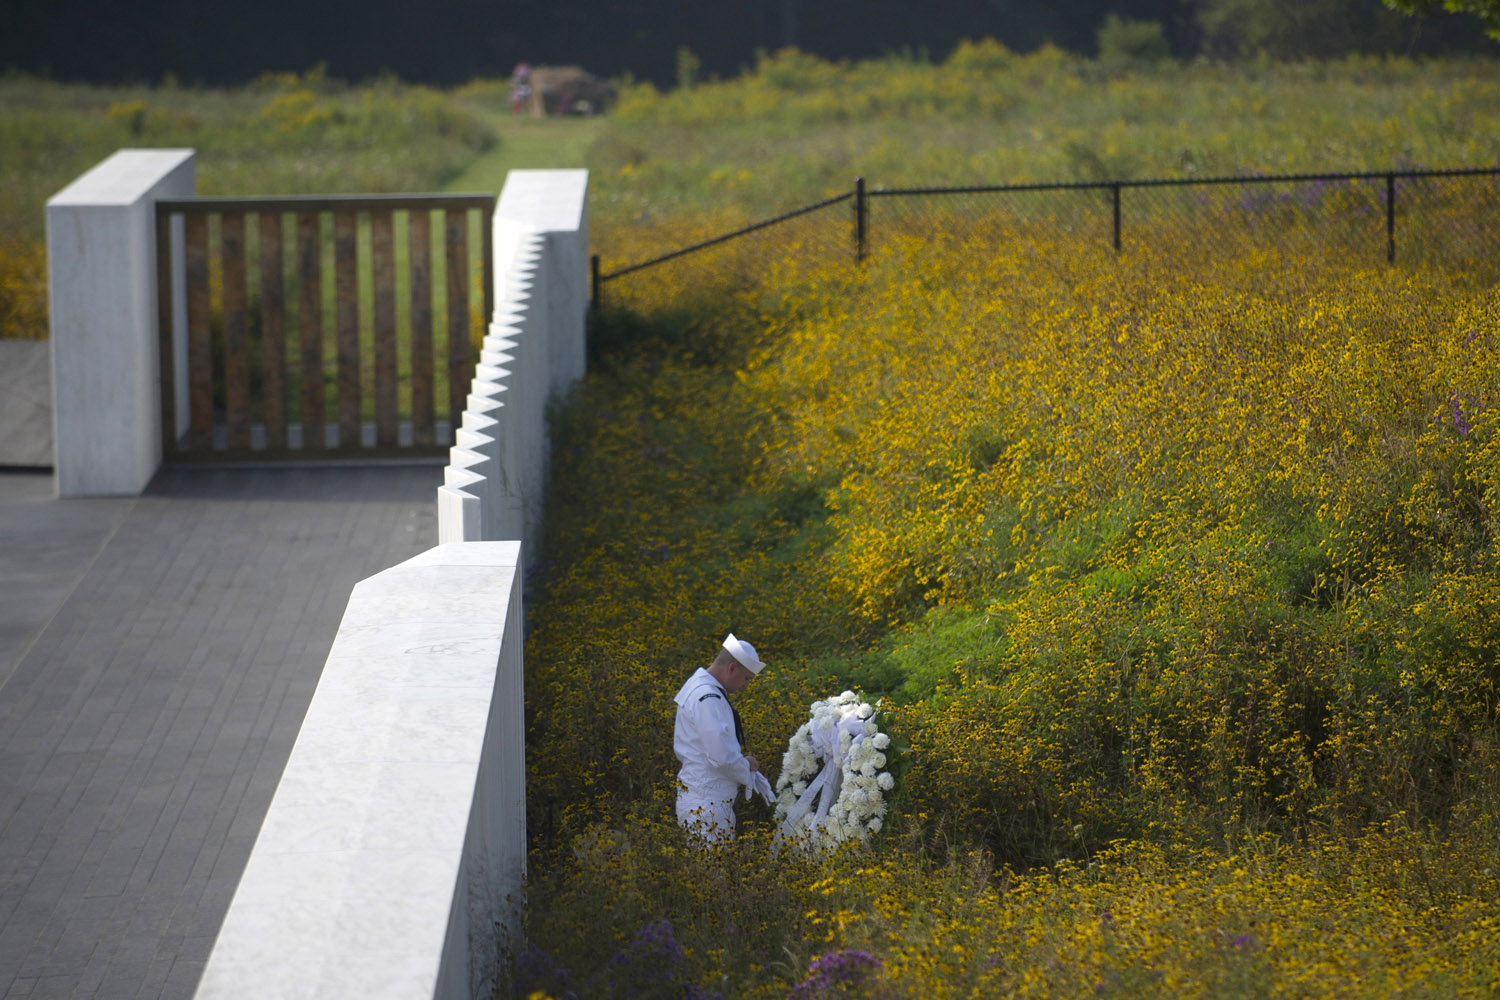 Sept. 11, 2013. A Navy honor guard prepares a wreath before the arrival of United States Secretary of the Interior Sally Jewell at the Flight 93 National Memorial during ceremonies commemorating the 12th anniversary of the 9/11 attacks on in Shanksville, Pa.